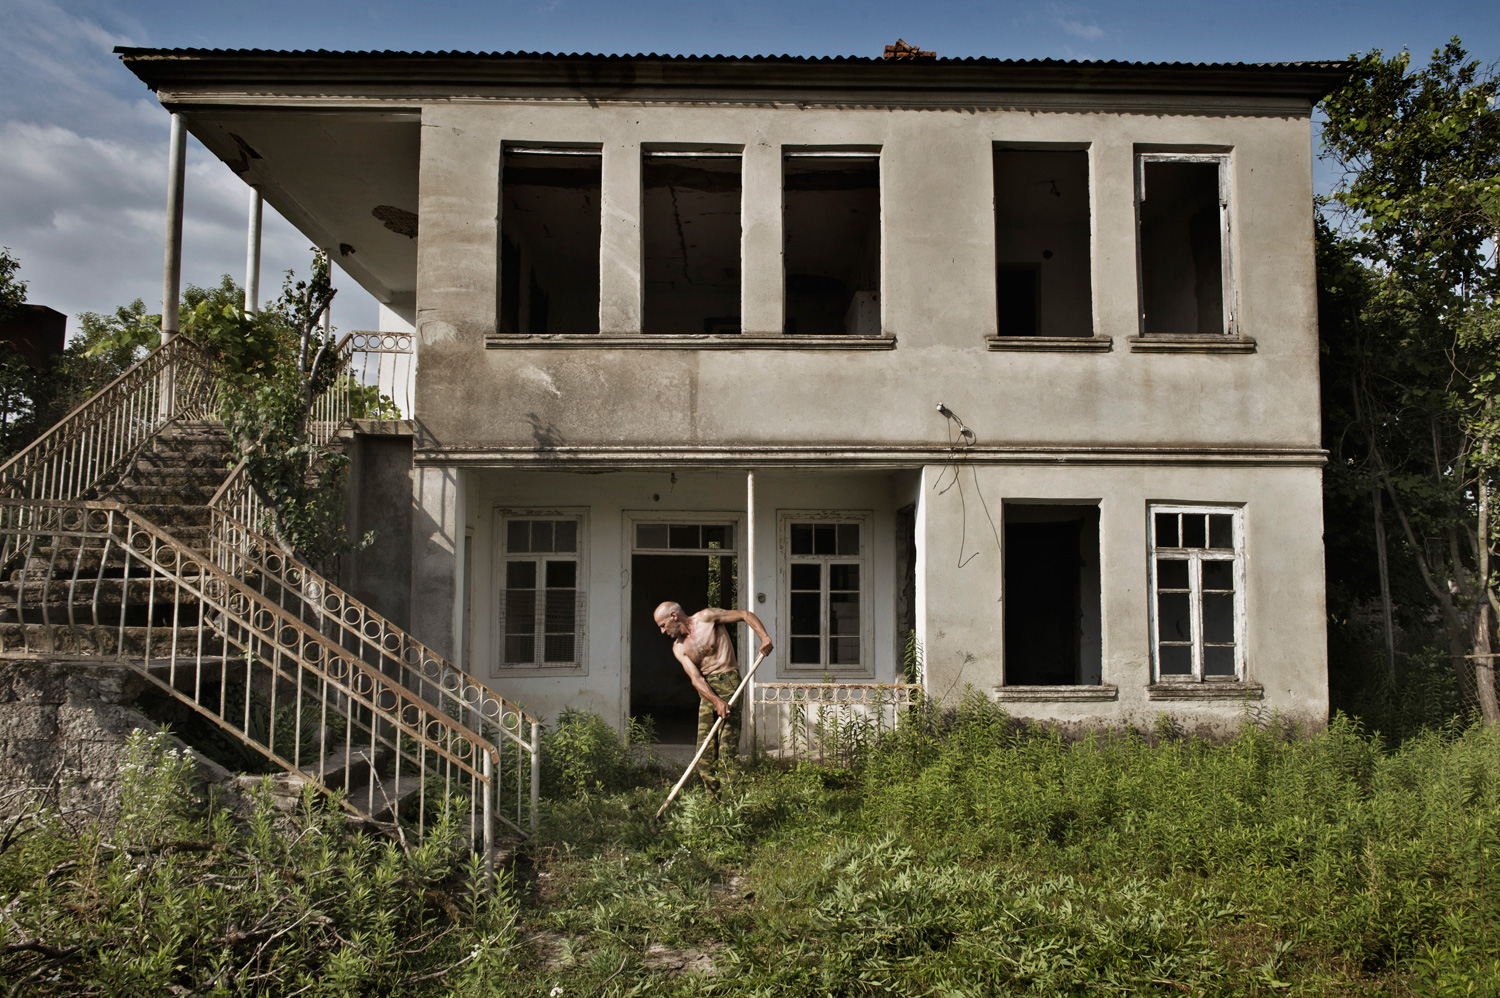 An Abkhaz man mows the lawn near an abandoned house where a Georgian family used to live.